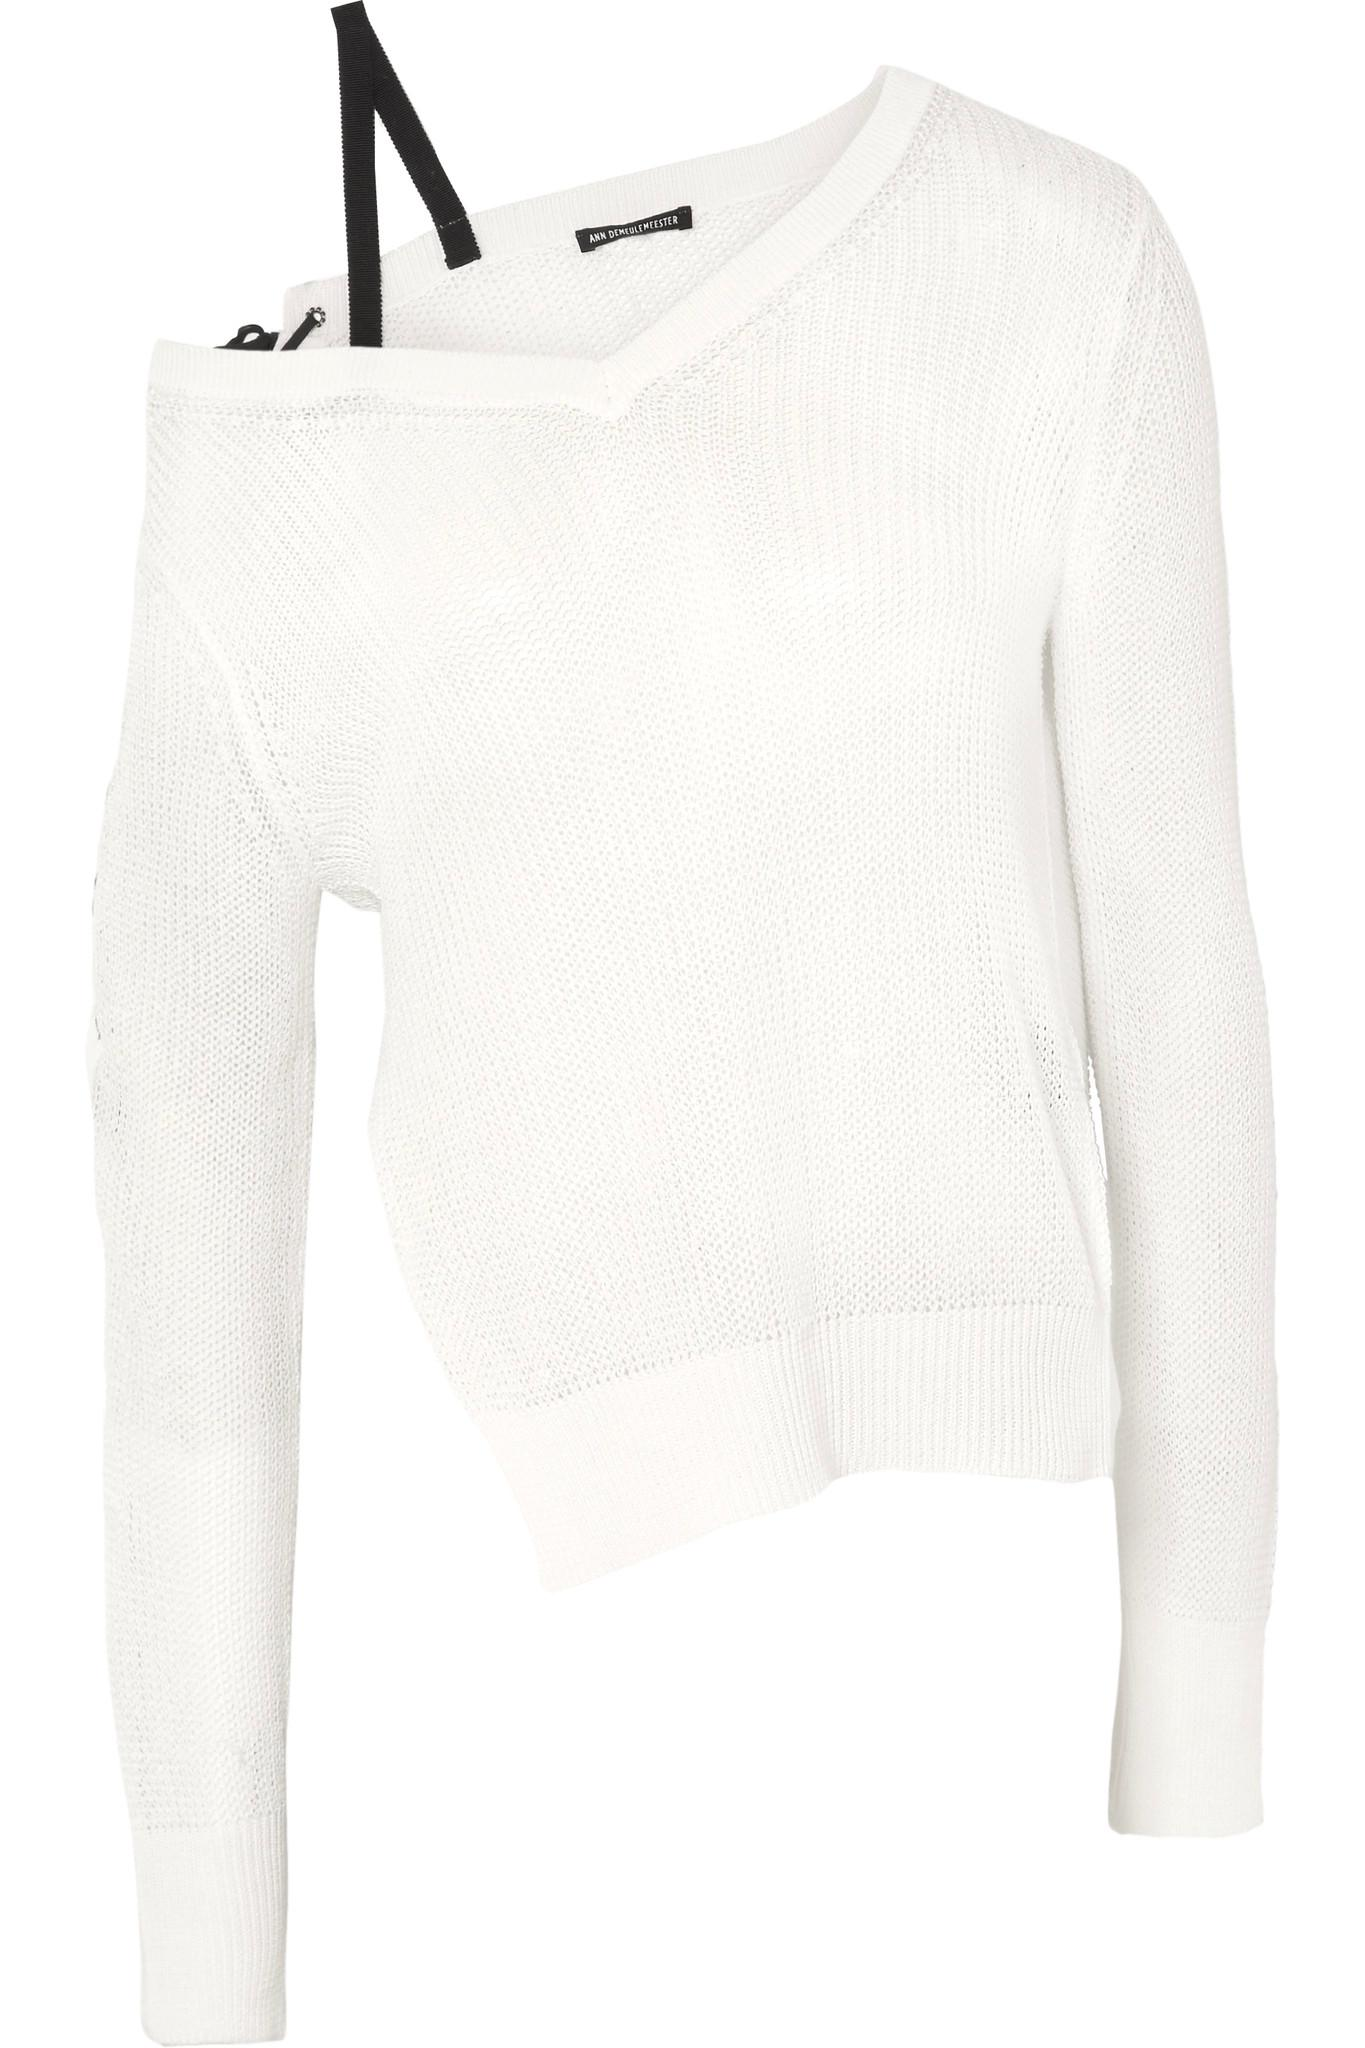 Asymmetric Lace-up Cotton Sweater - White Ann Demeulemeester For Sale Wholesale Price Outlet Store For Sale Original cz8sLc